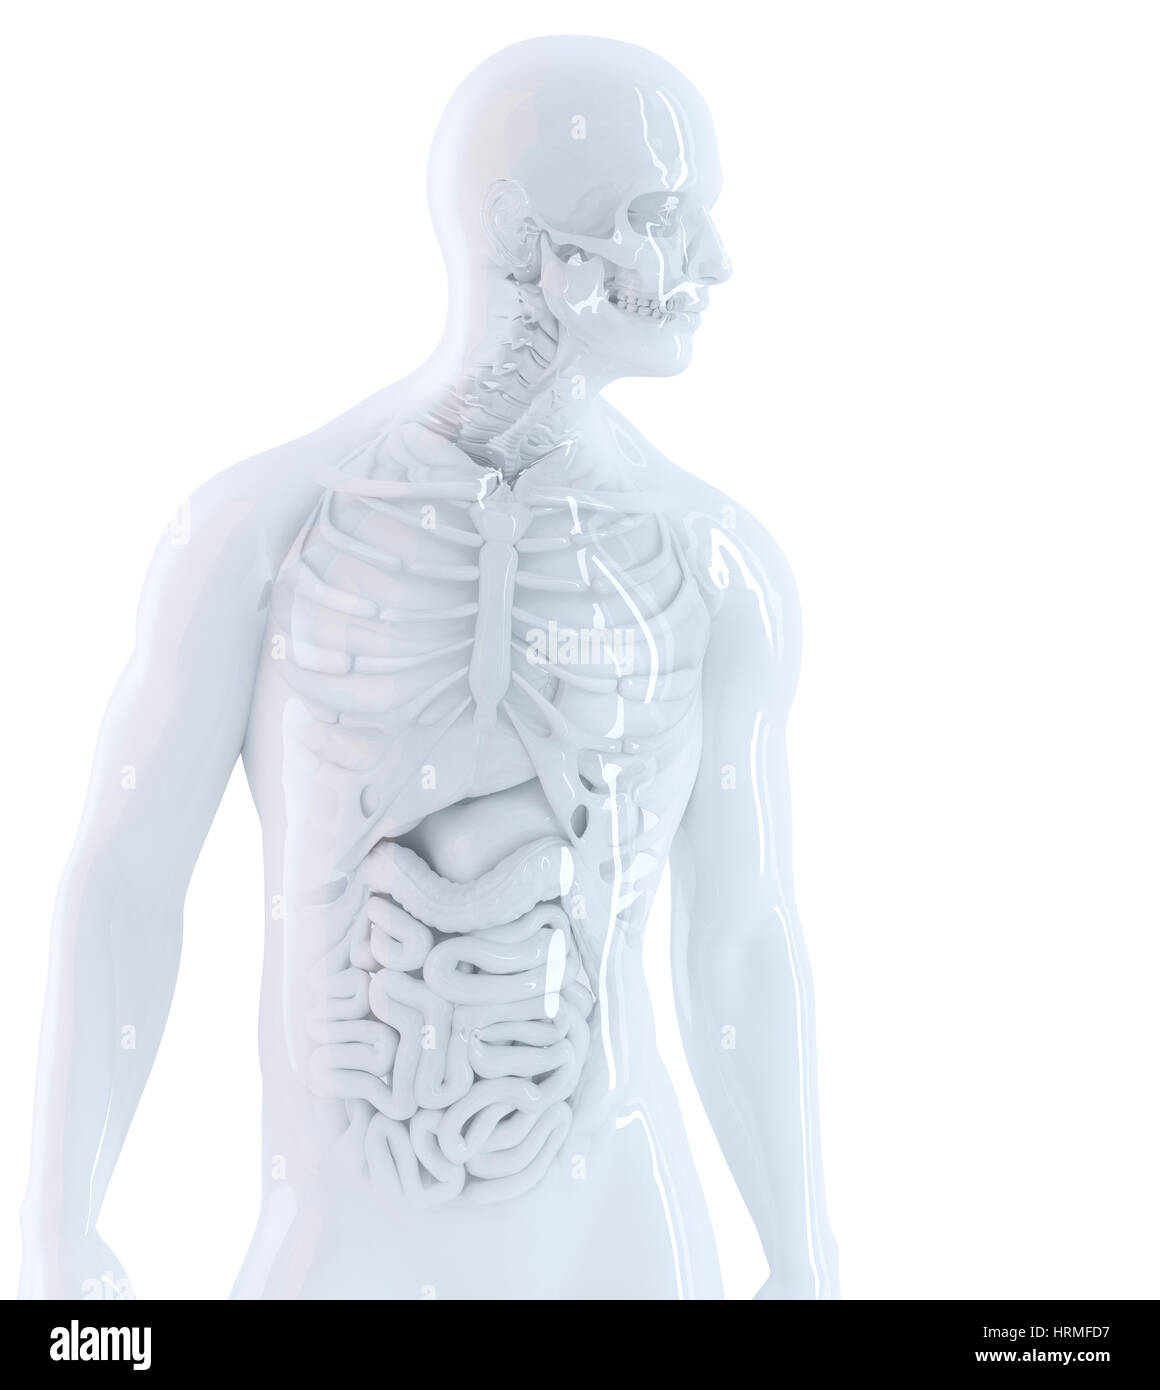 Guts Anatomy Stockfotos & Guts Anatomy Bilder - Alamy